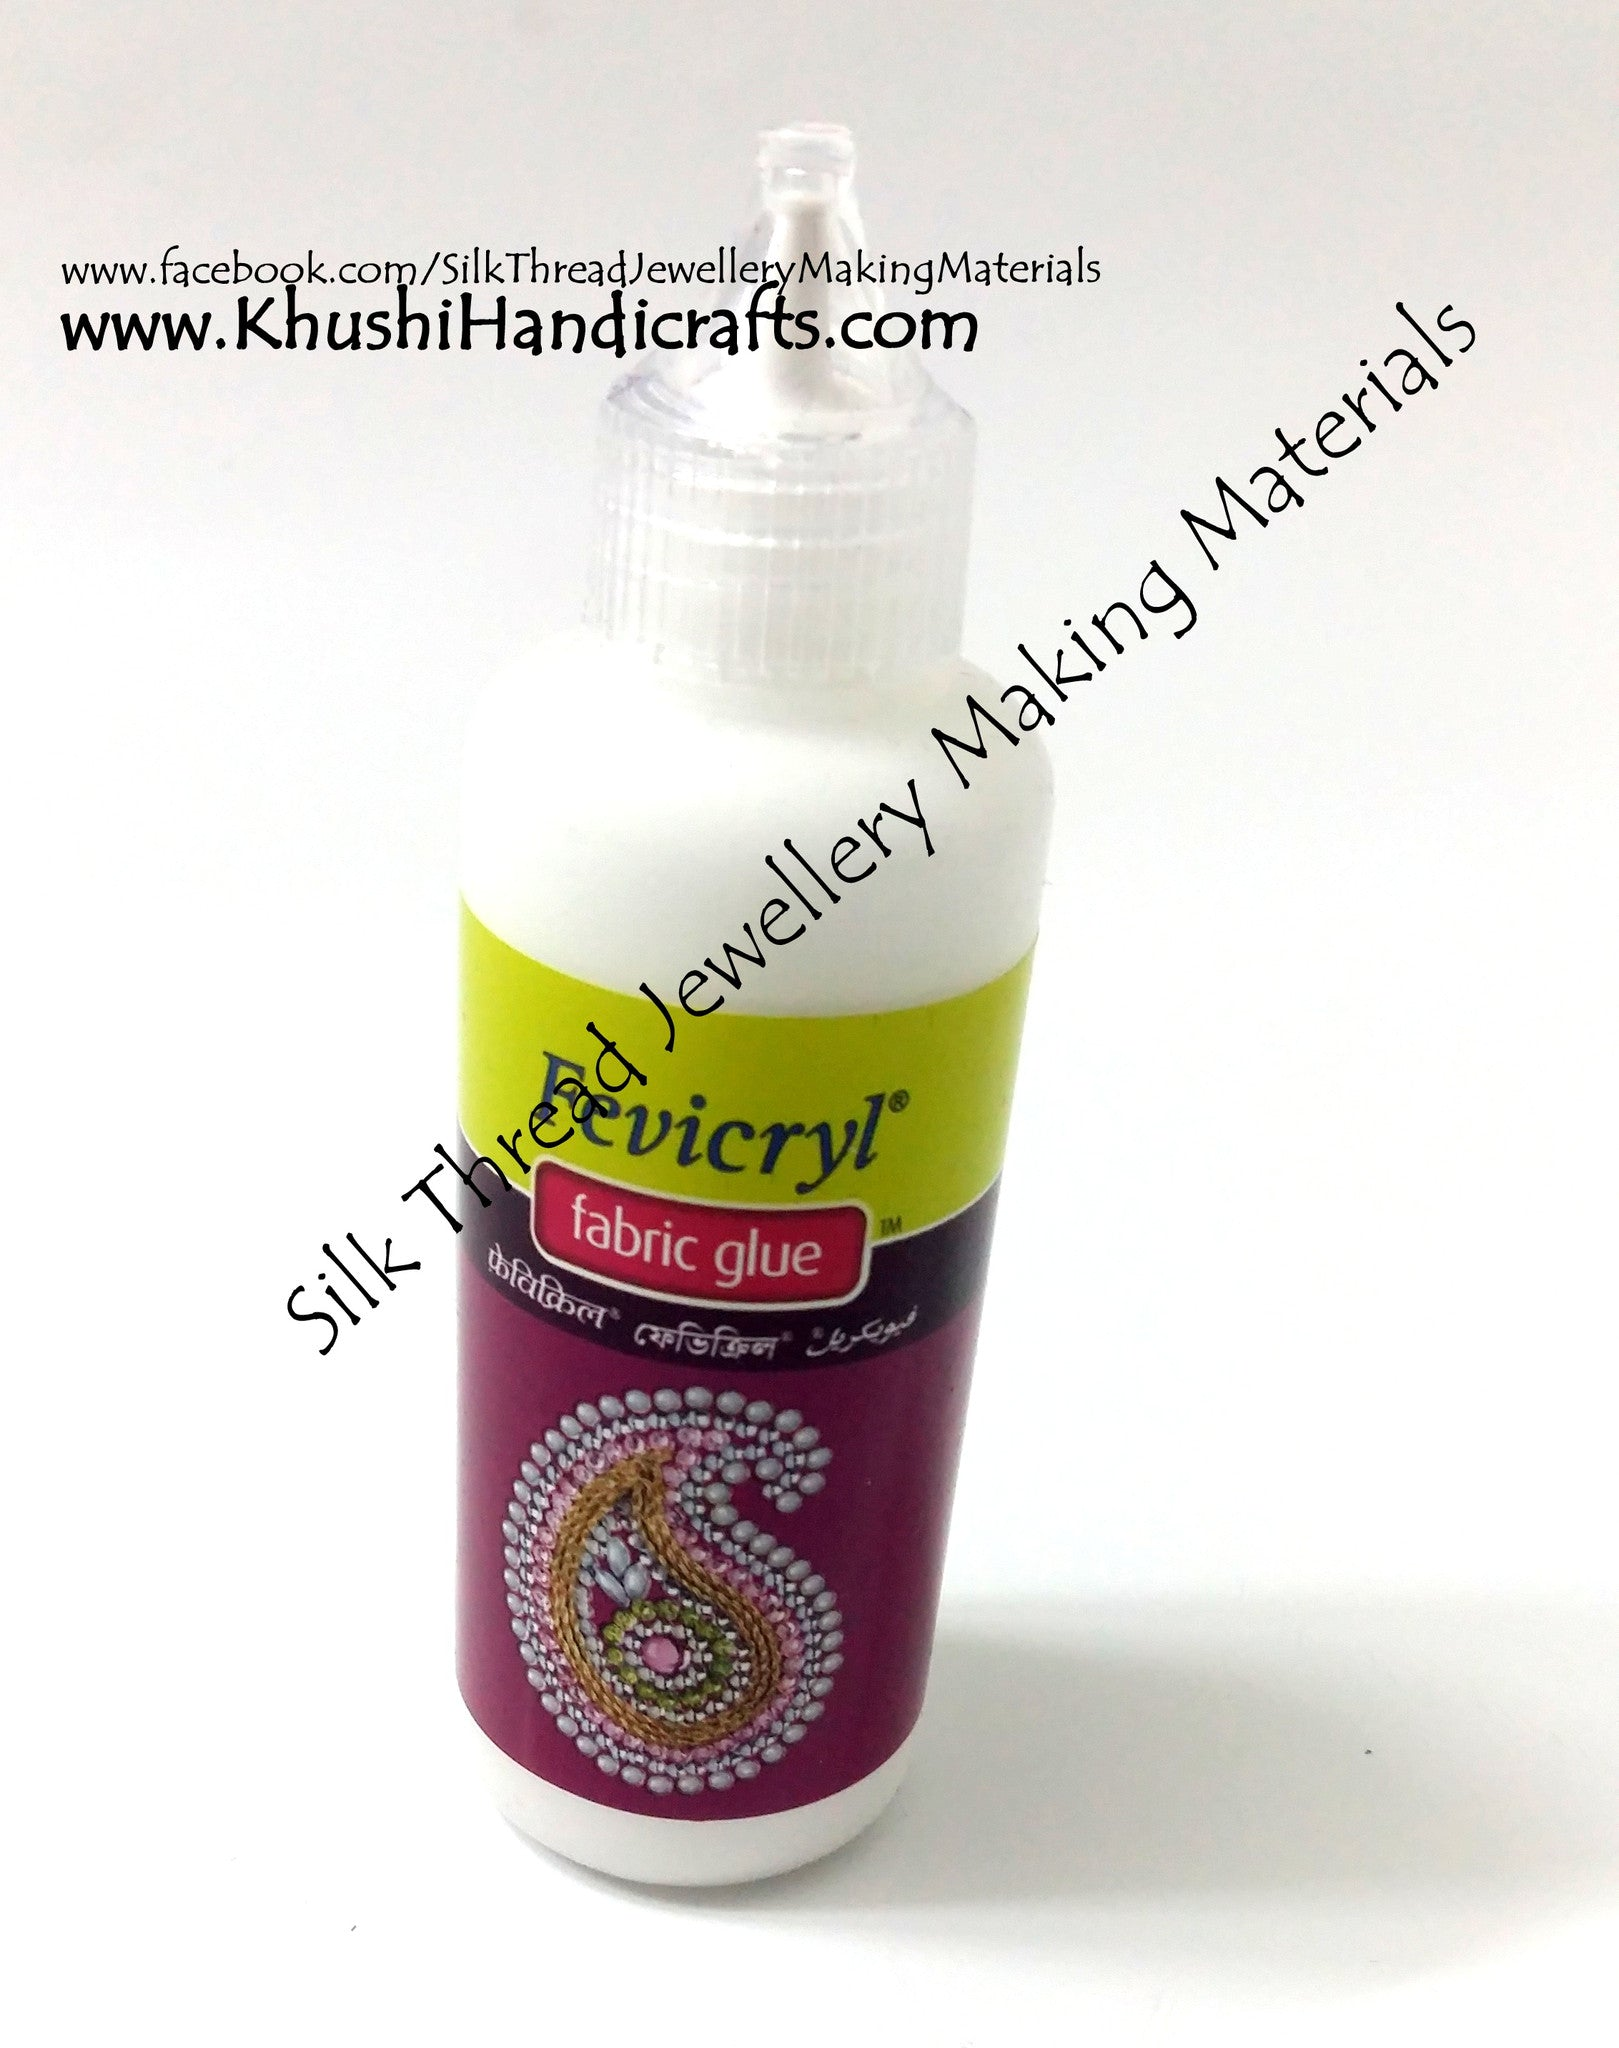 Fabric Glue - Khushi Handmade Jewellery